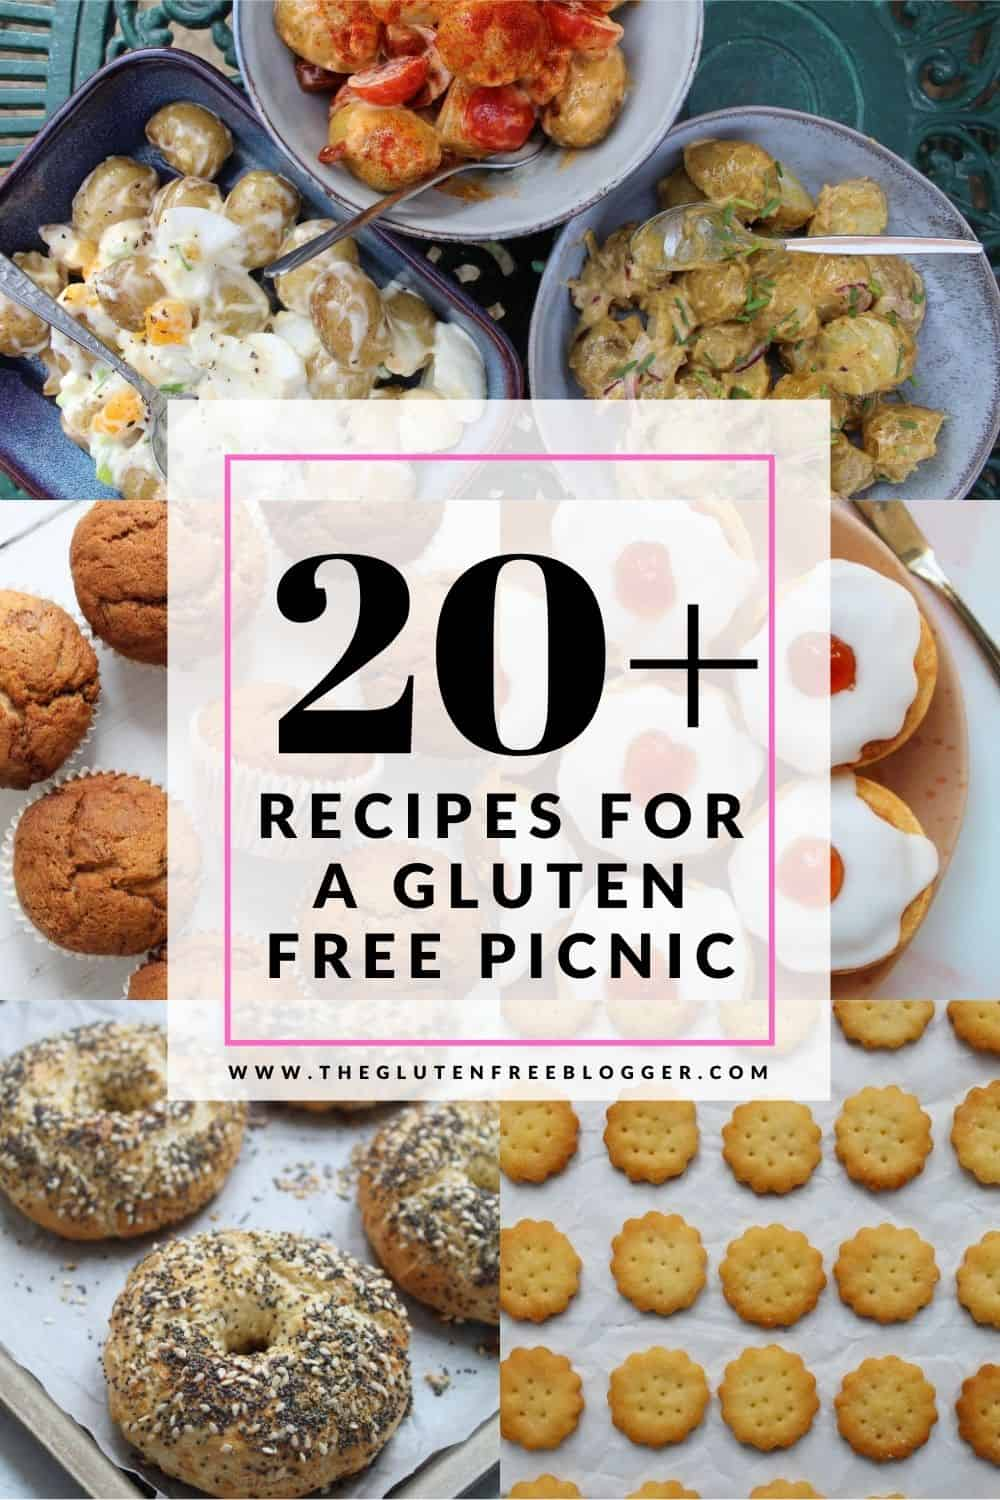 GLUTEN FREE PICNIC RECIPES